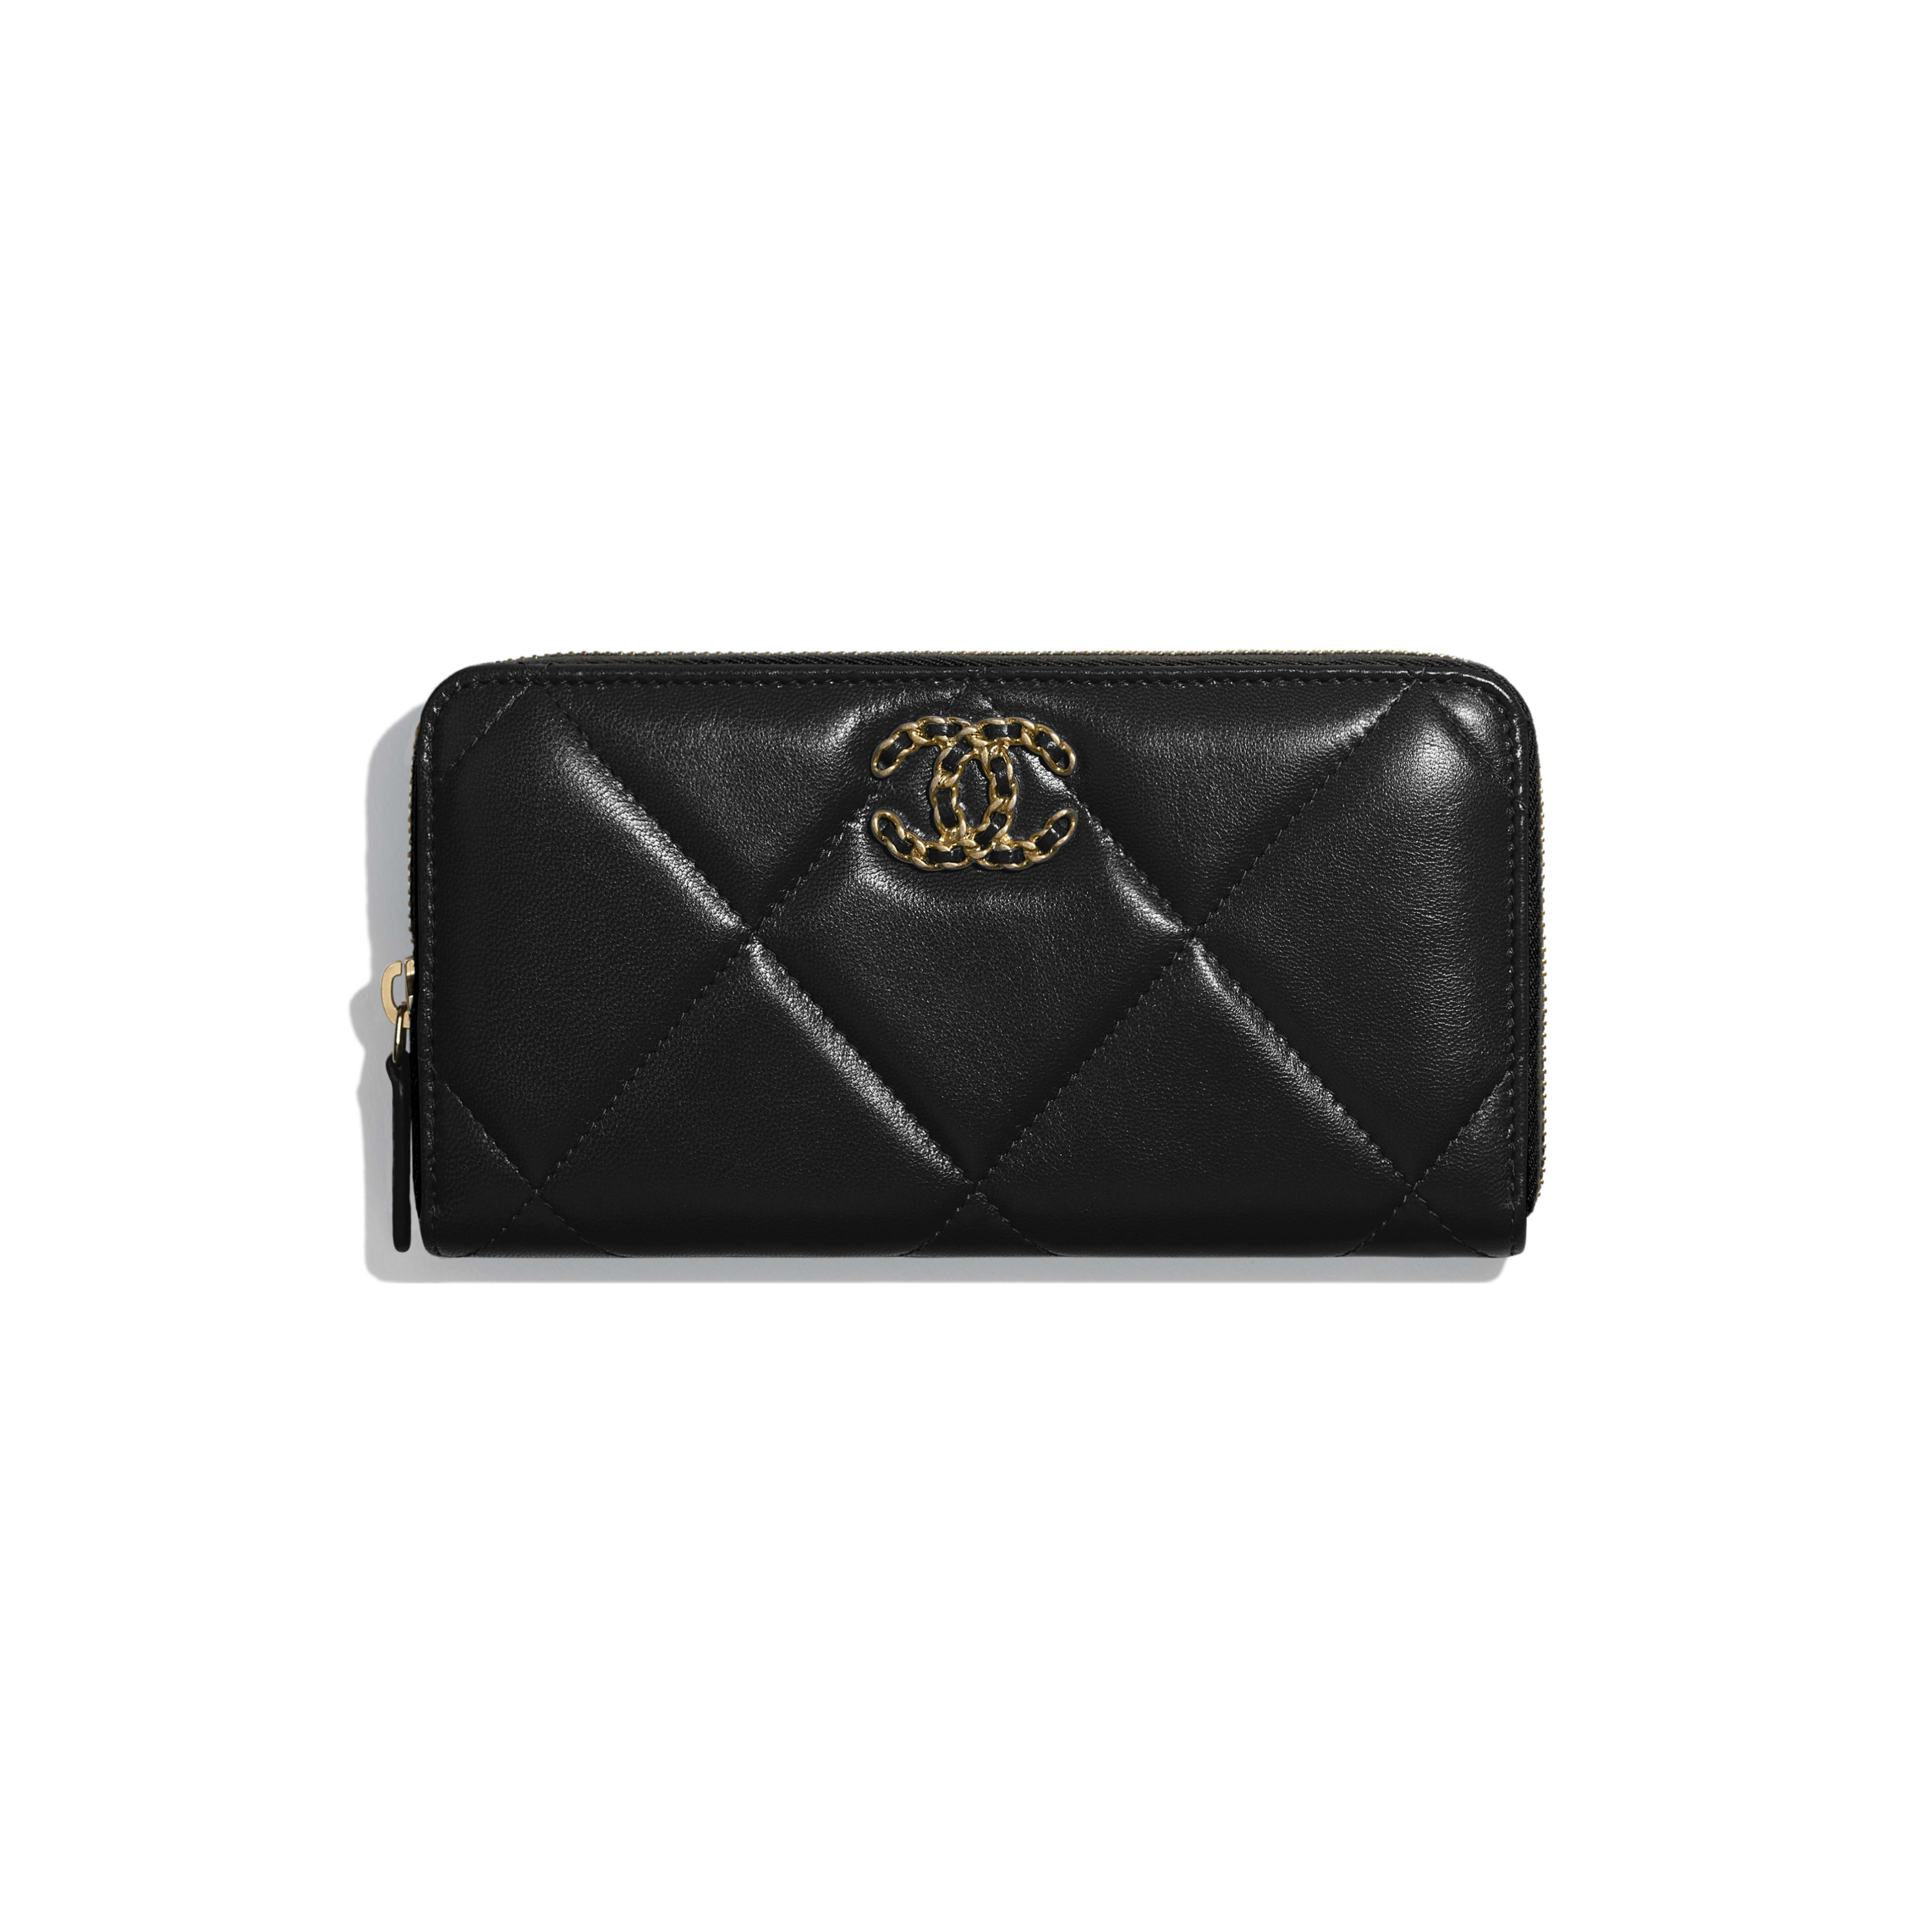 CHANEL 19 Long Zipped Wallet - Black - Goatskin, Gold-Tone, Silver-Tone & Ruthenium-Finish Metal - Default view - see full sized version